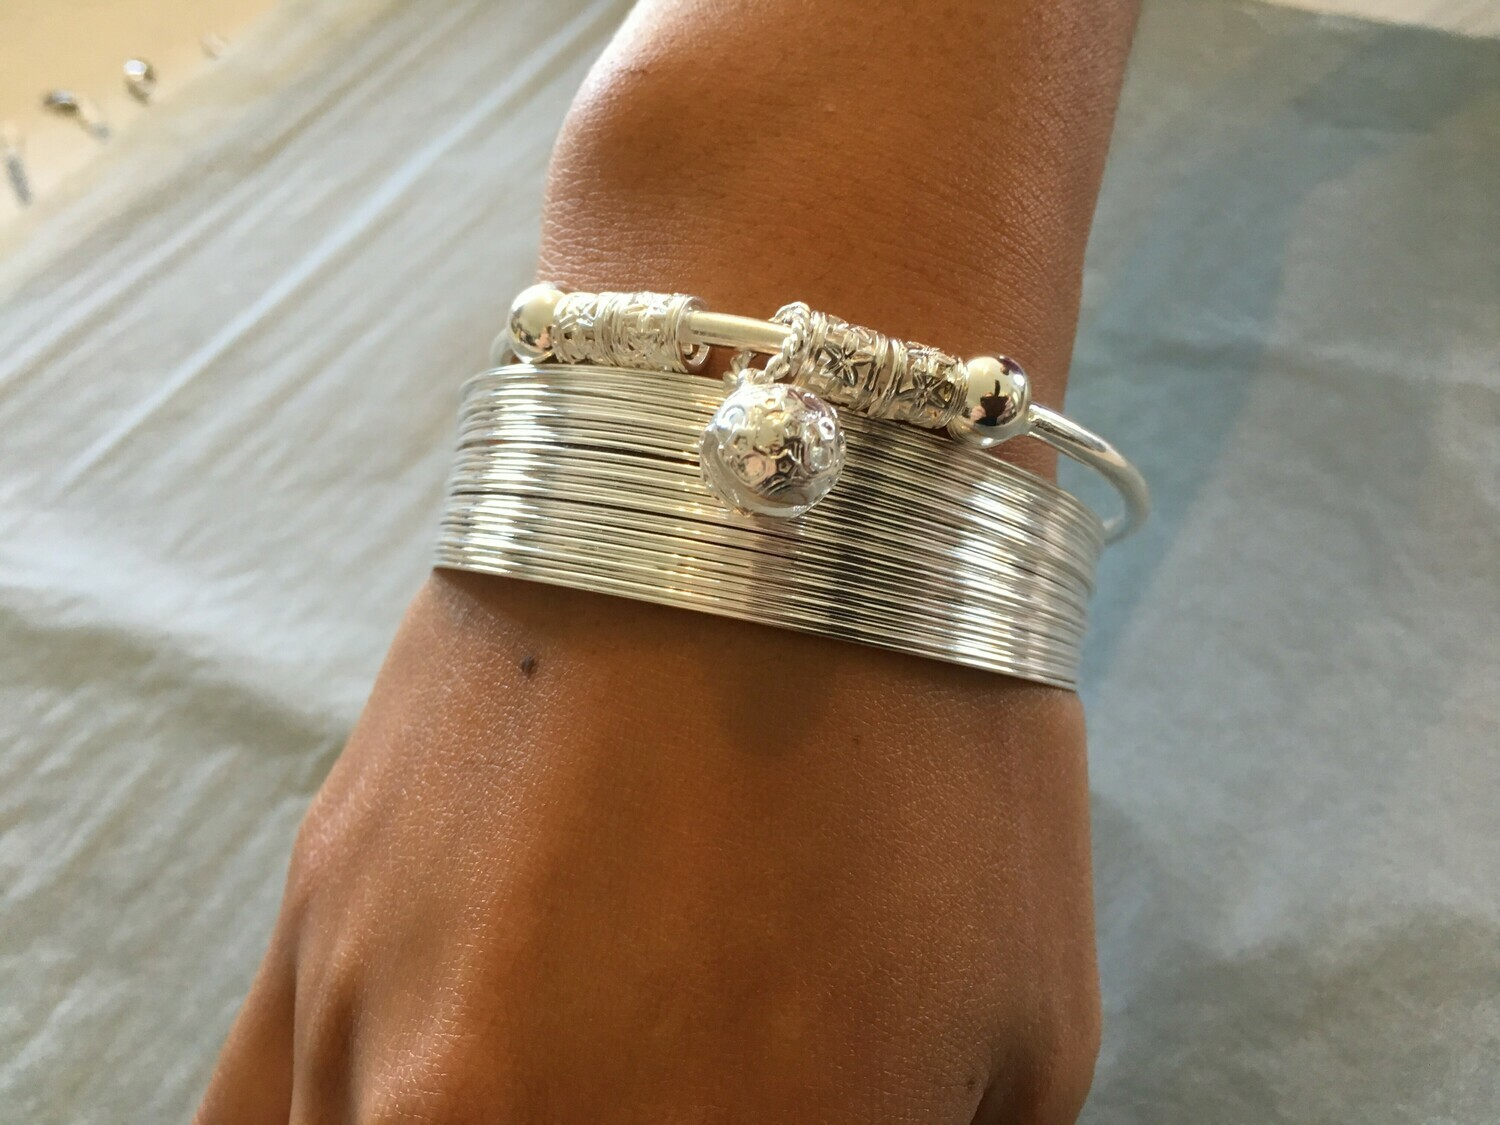 Was $64.90 - Now 58%OFF - Combine 2 Sterling Silver Bangle Cuffs for This Gorgeous Fashionable Look